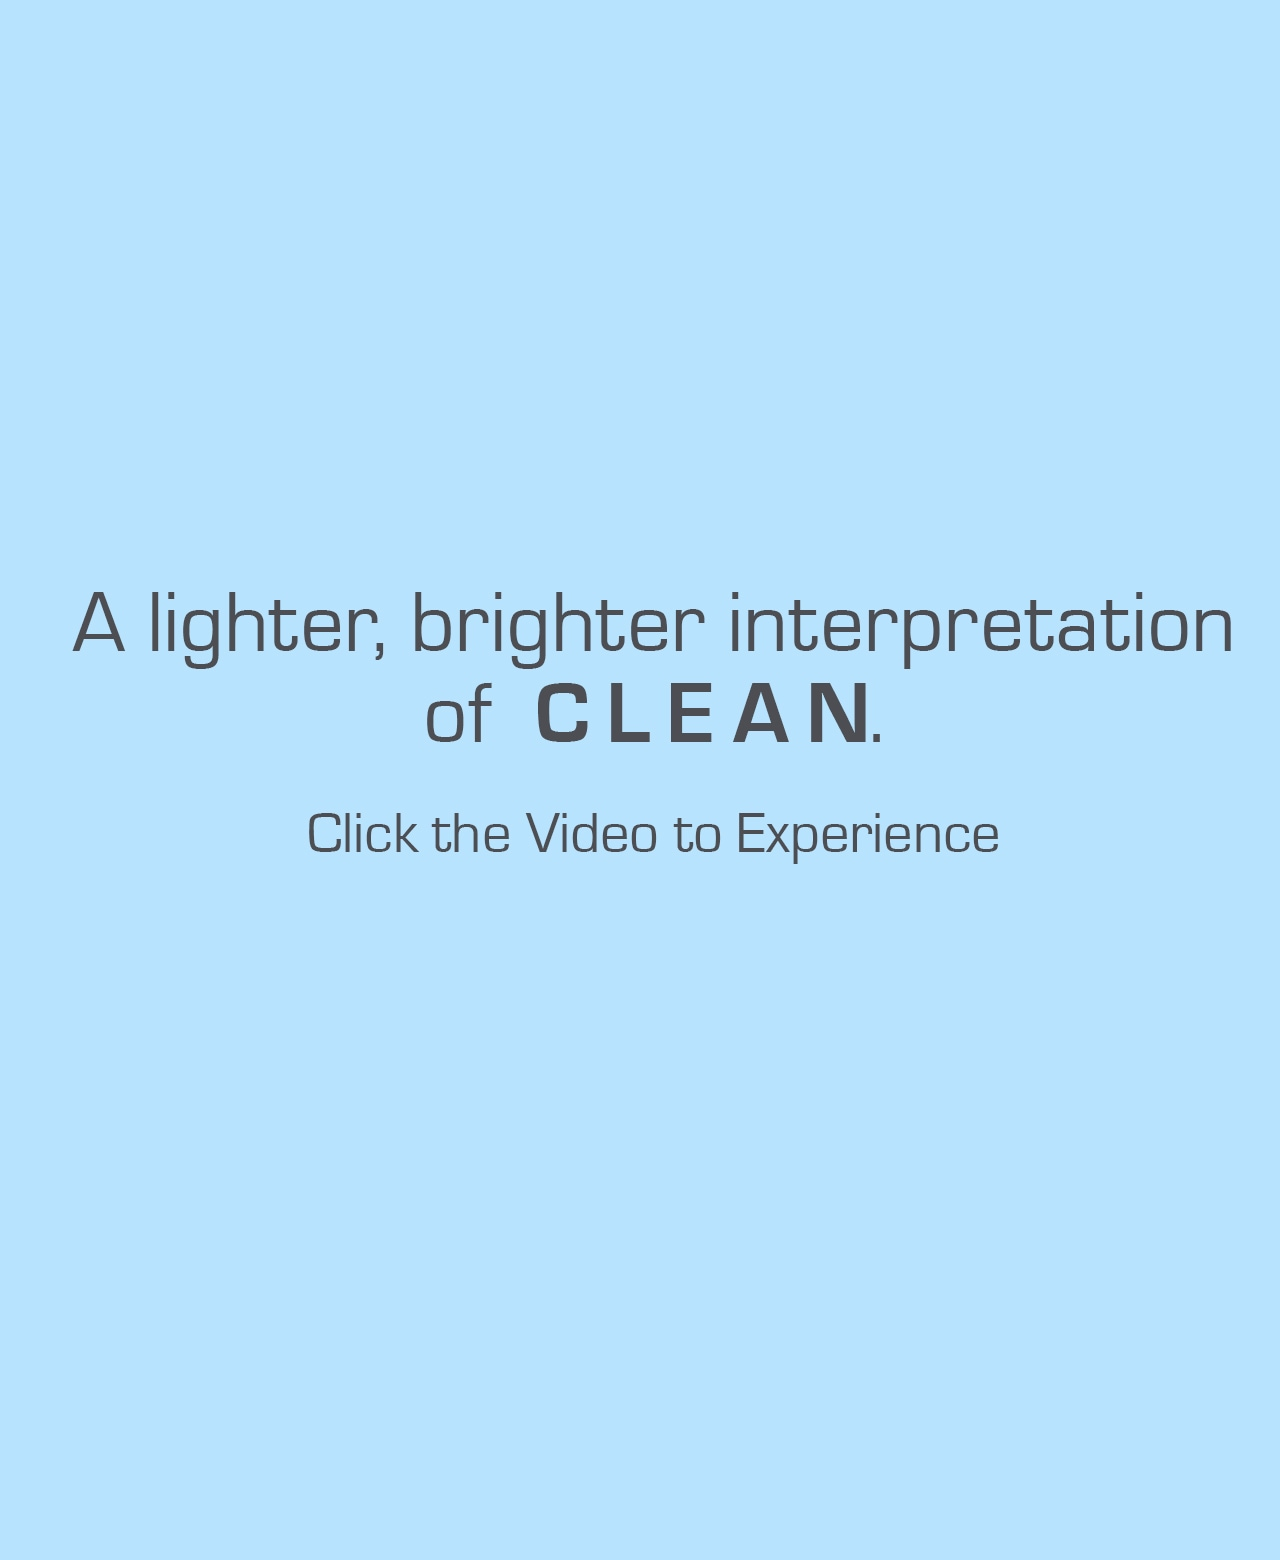 A lighter, brighter interpretation of Clean